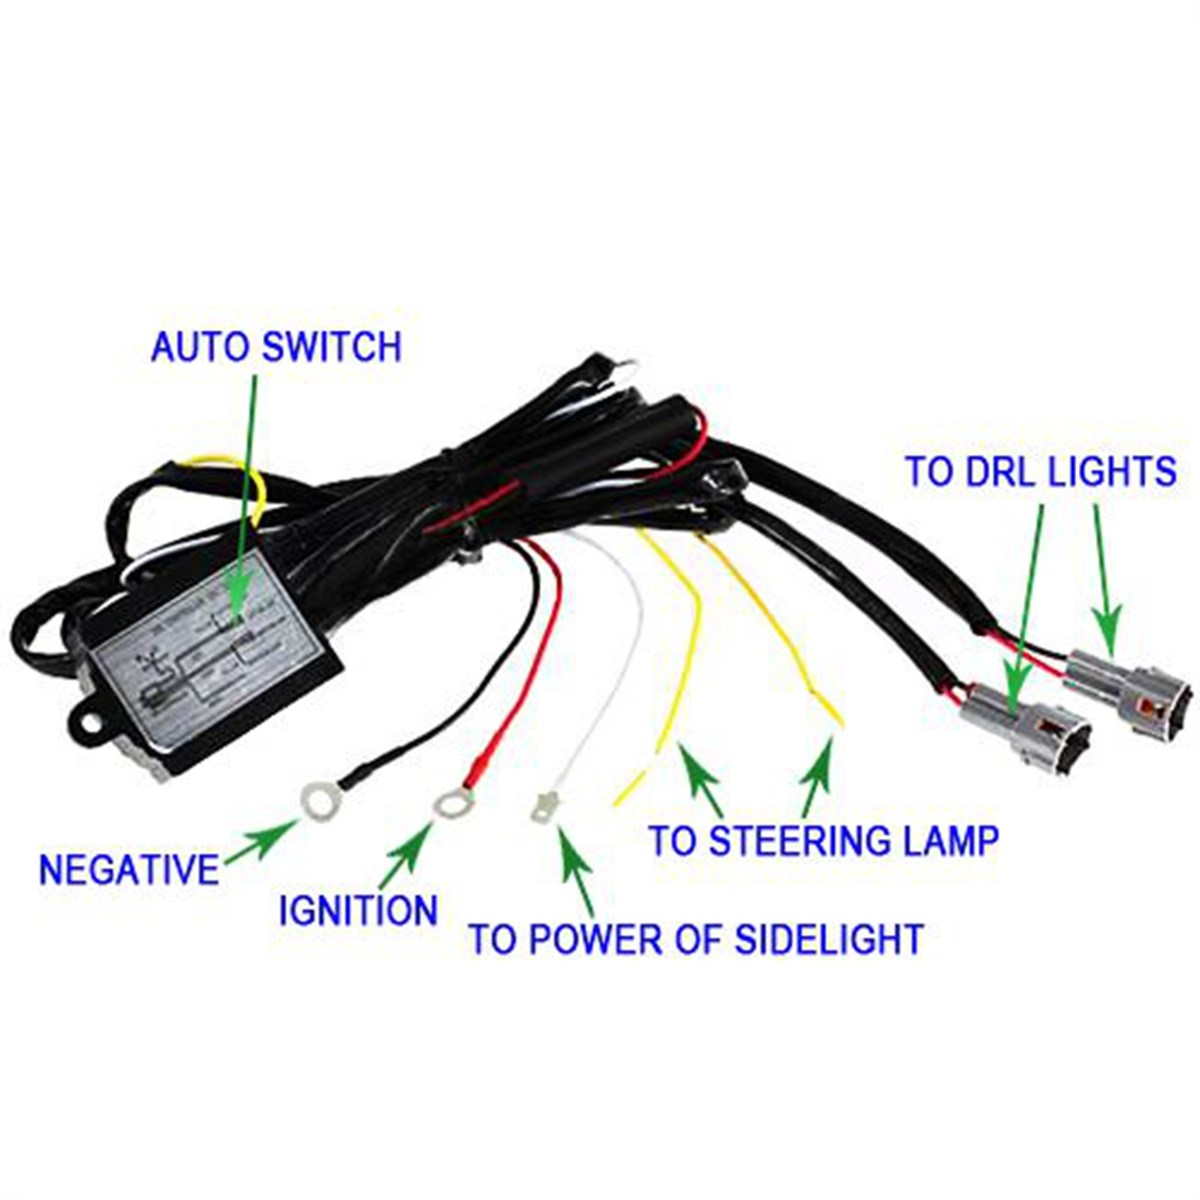 medium resolution of drl led daytime running light relay harness automatic on off control switch 12v warning lights